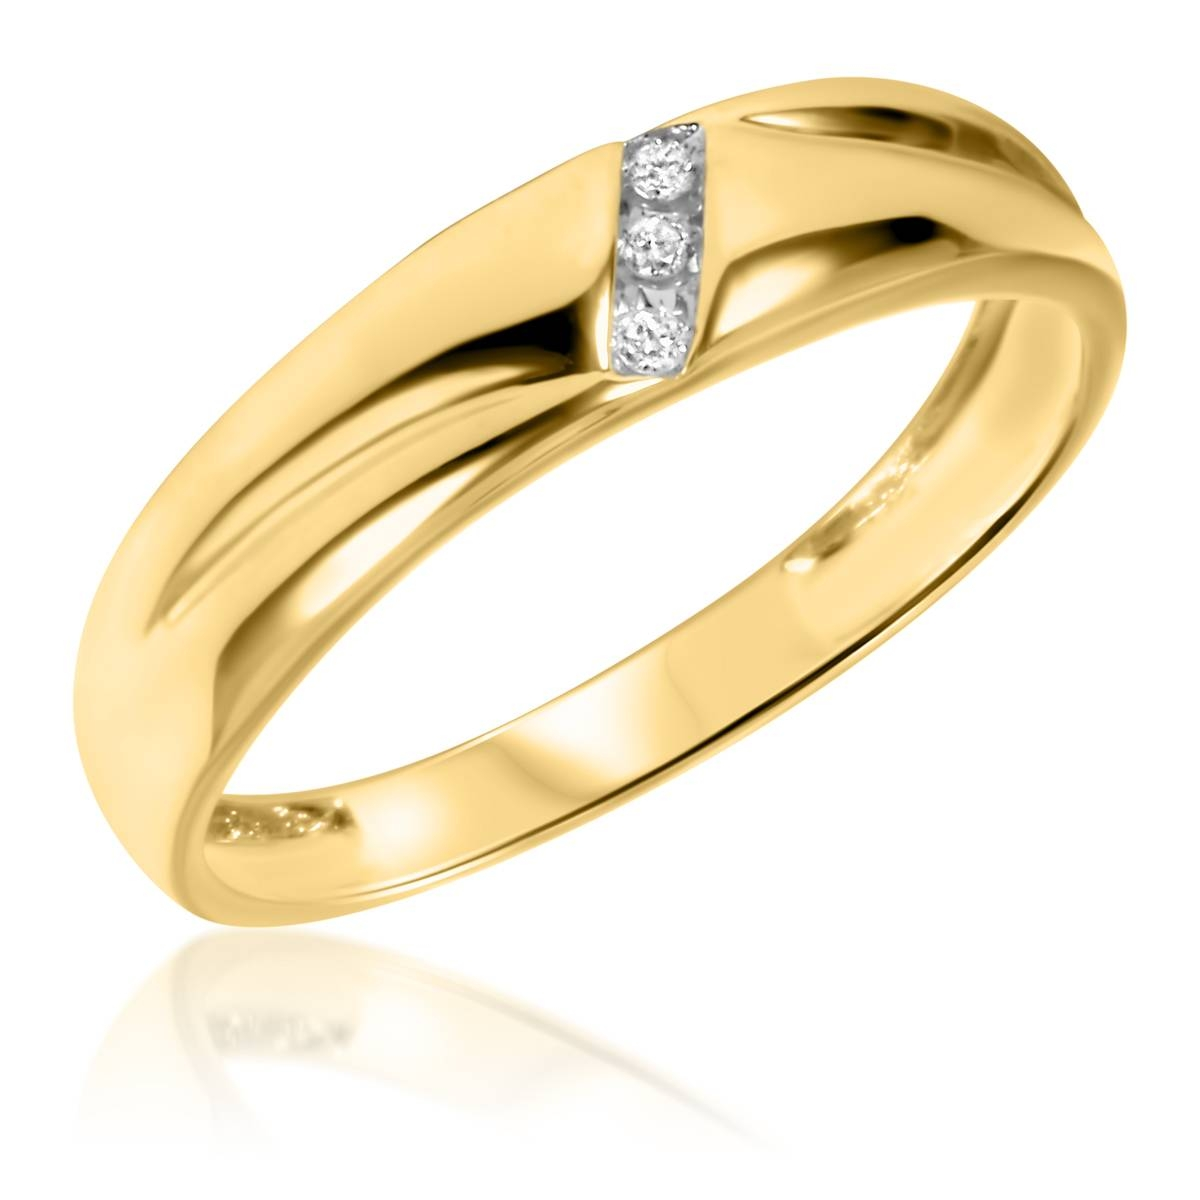 1/20 Ct. T.w. Diamond Men's Wedding Band 10K Yellow Gold Pertaining To Gold Men Wedding Rings (Gallery 11 of 15)